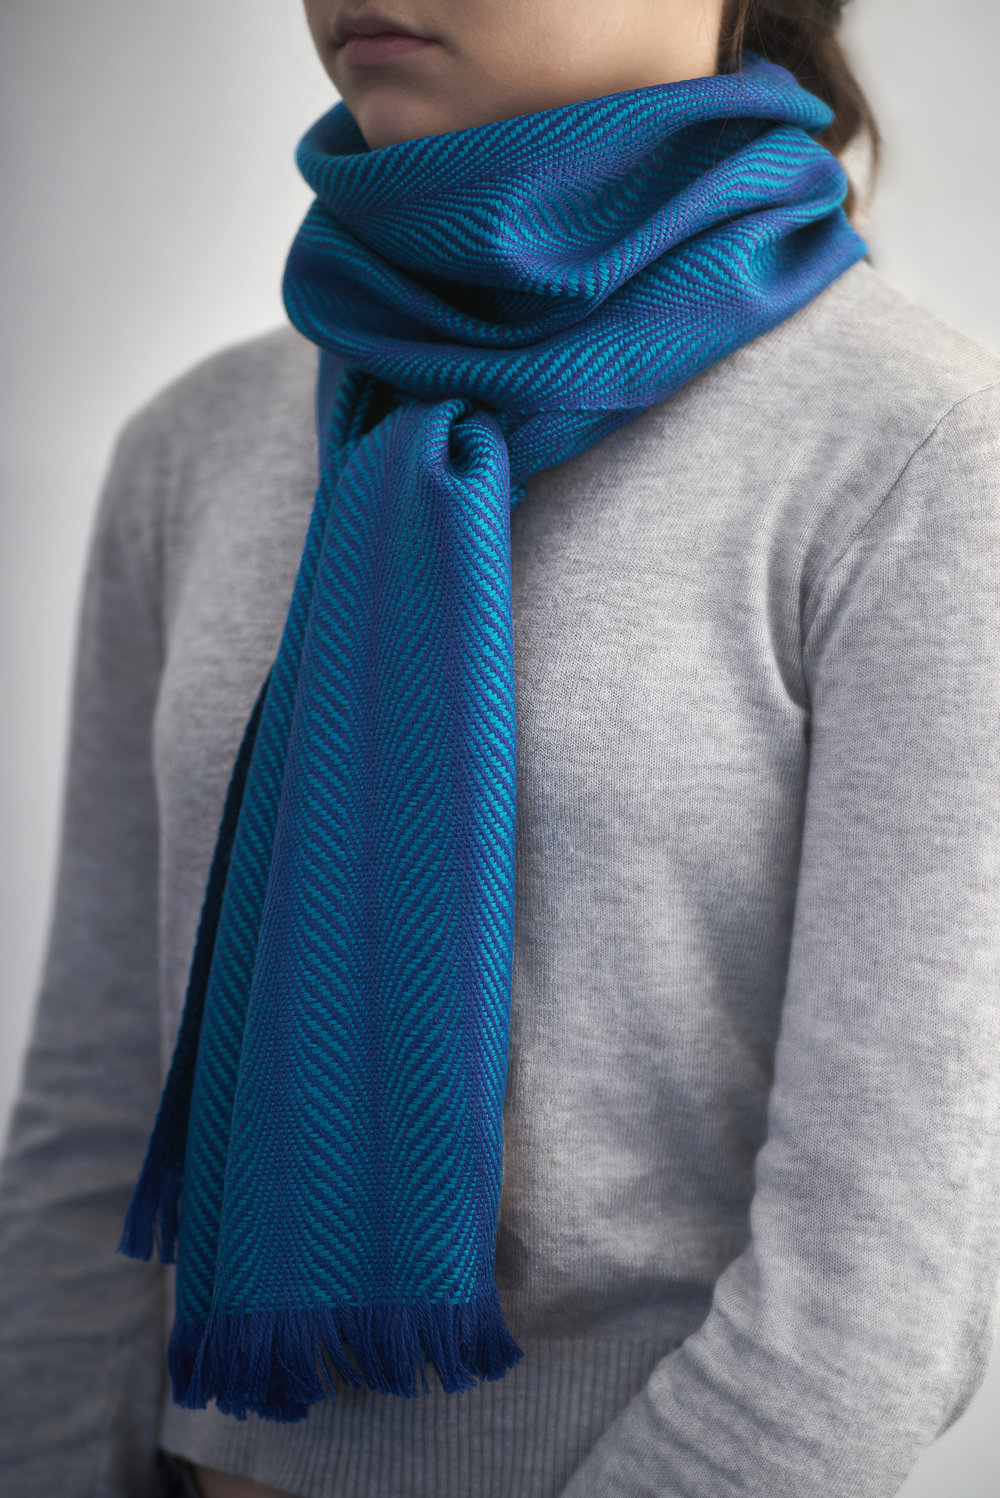 Lisbeth_Scarf_Detail_2016_0044 1.jpg